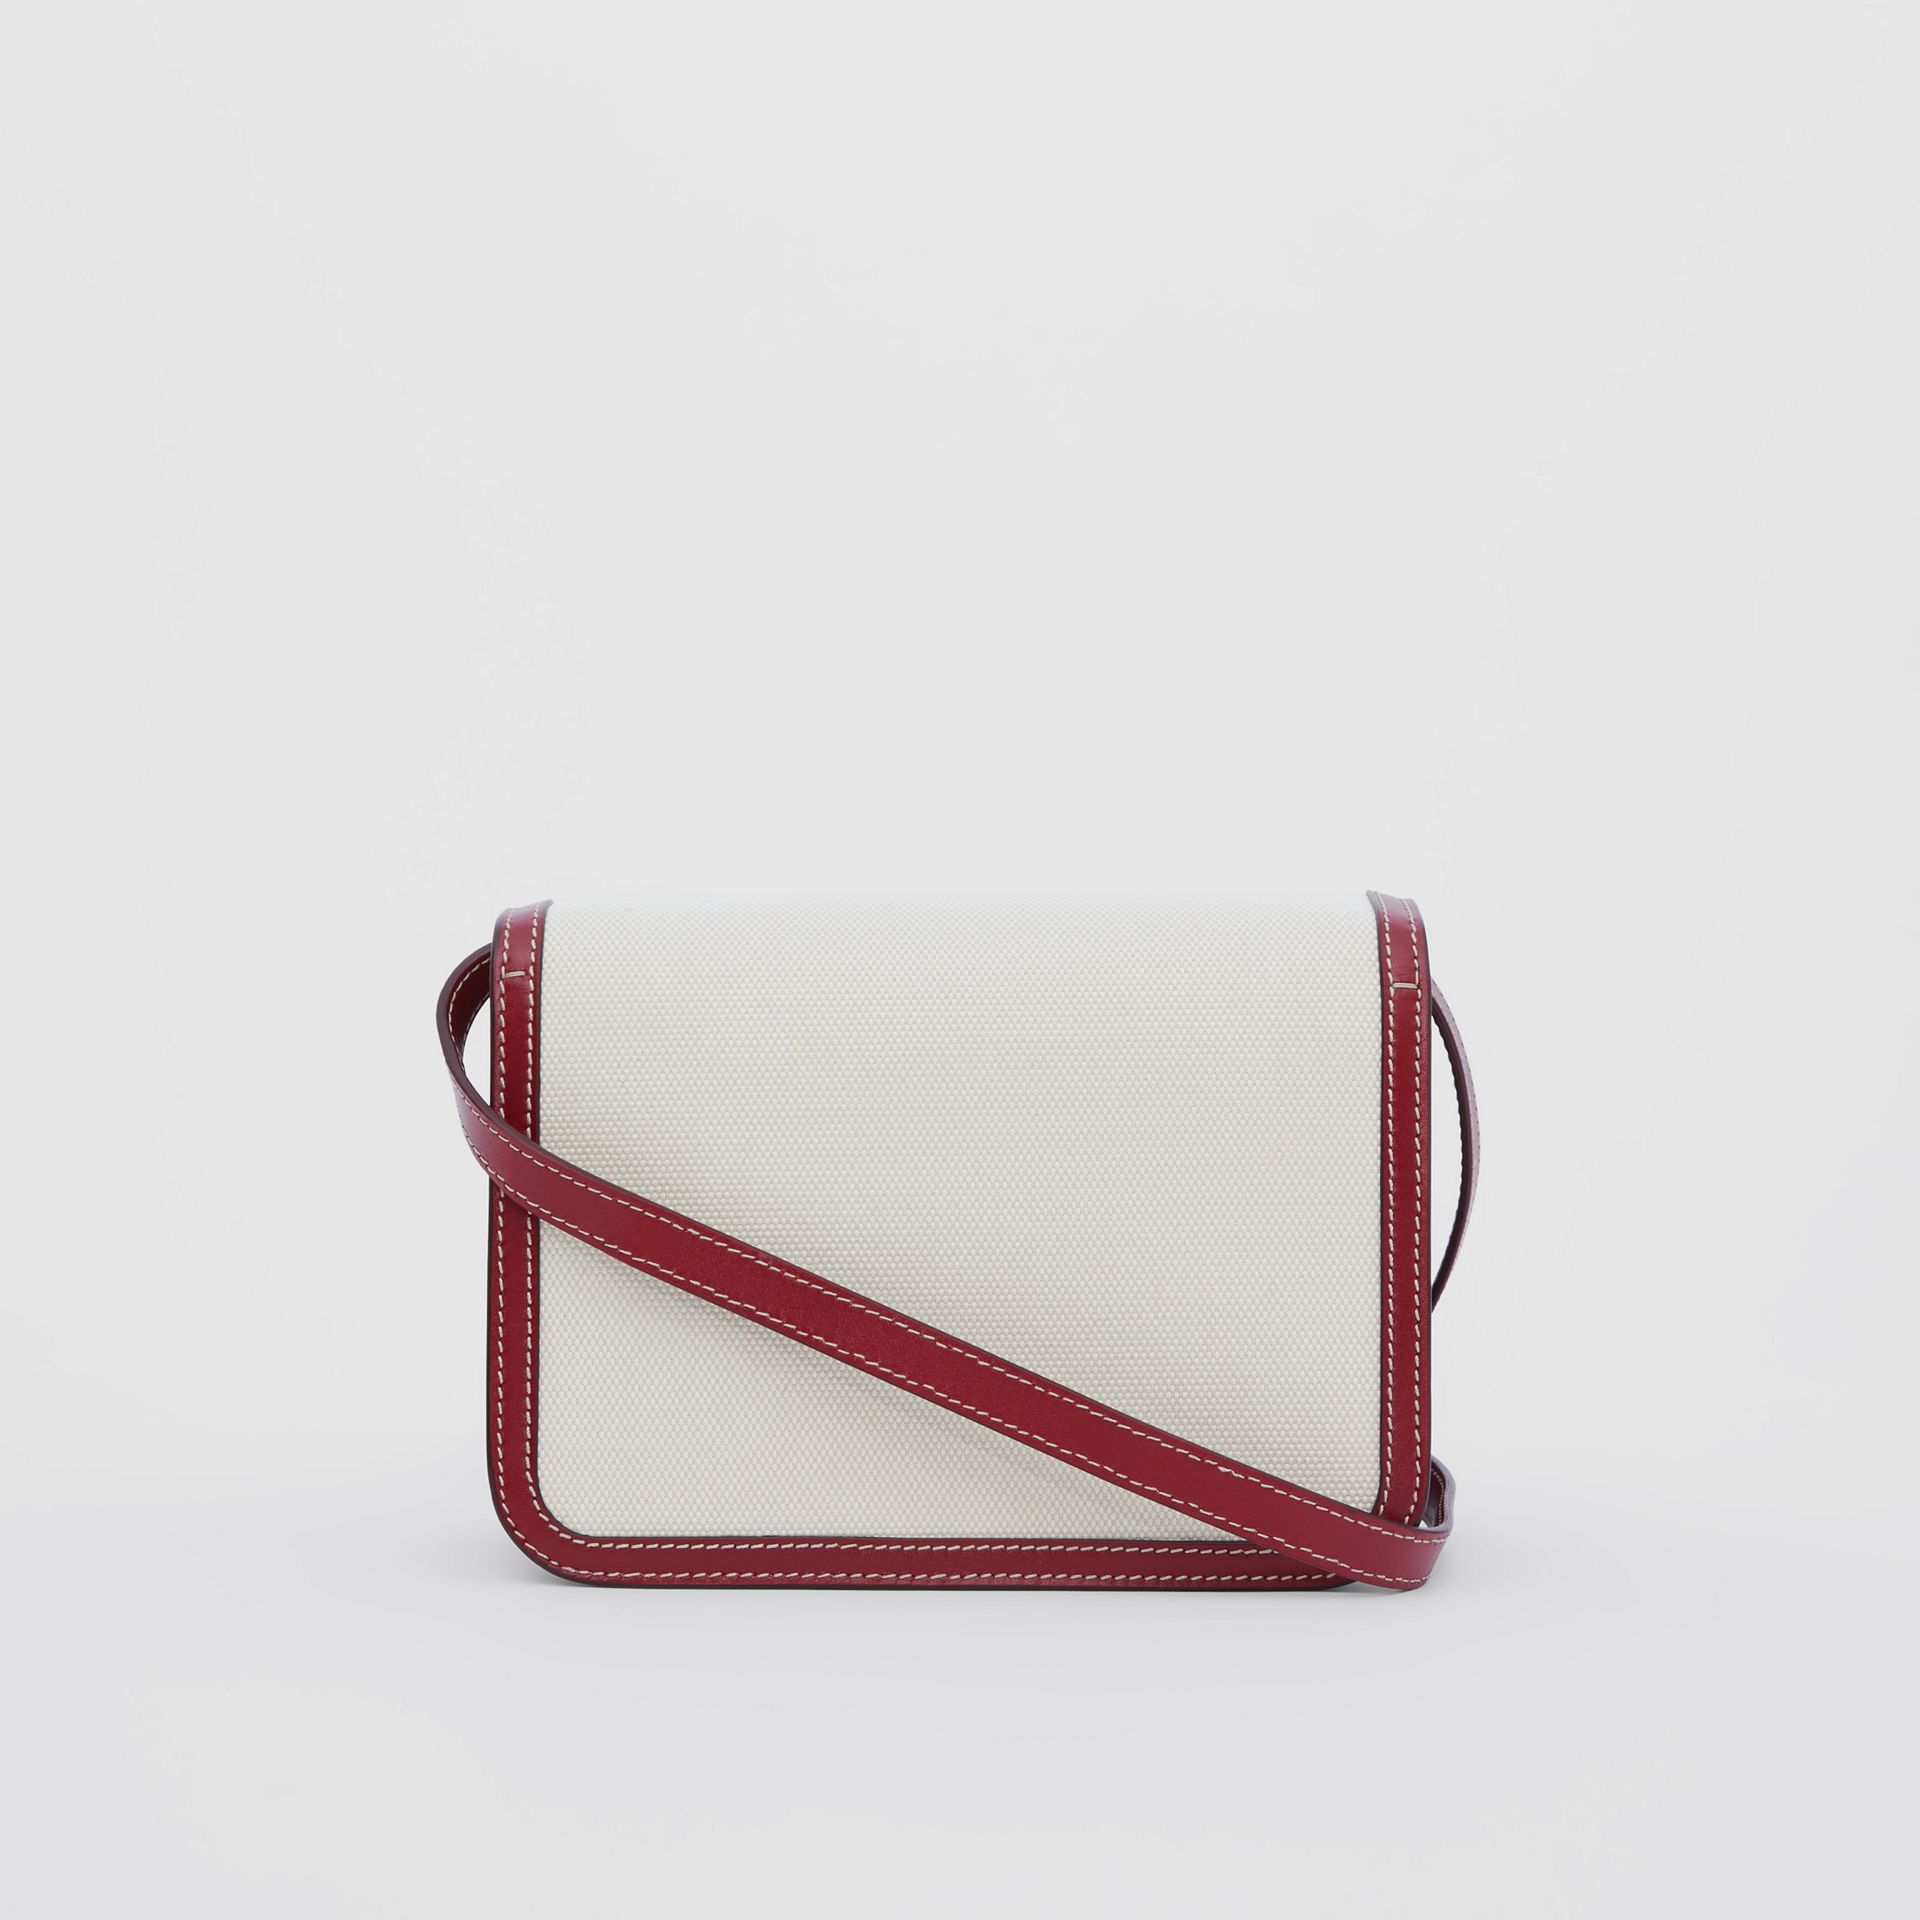 Small Two-tone Canvas and Leather TB Bag in Natural/dark Carmine - Women | Burberry - gallery image 6